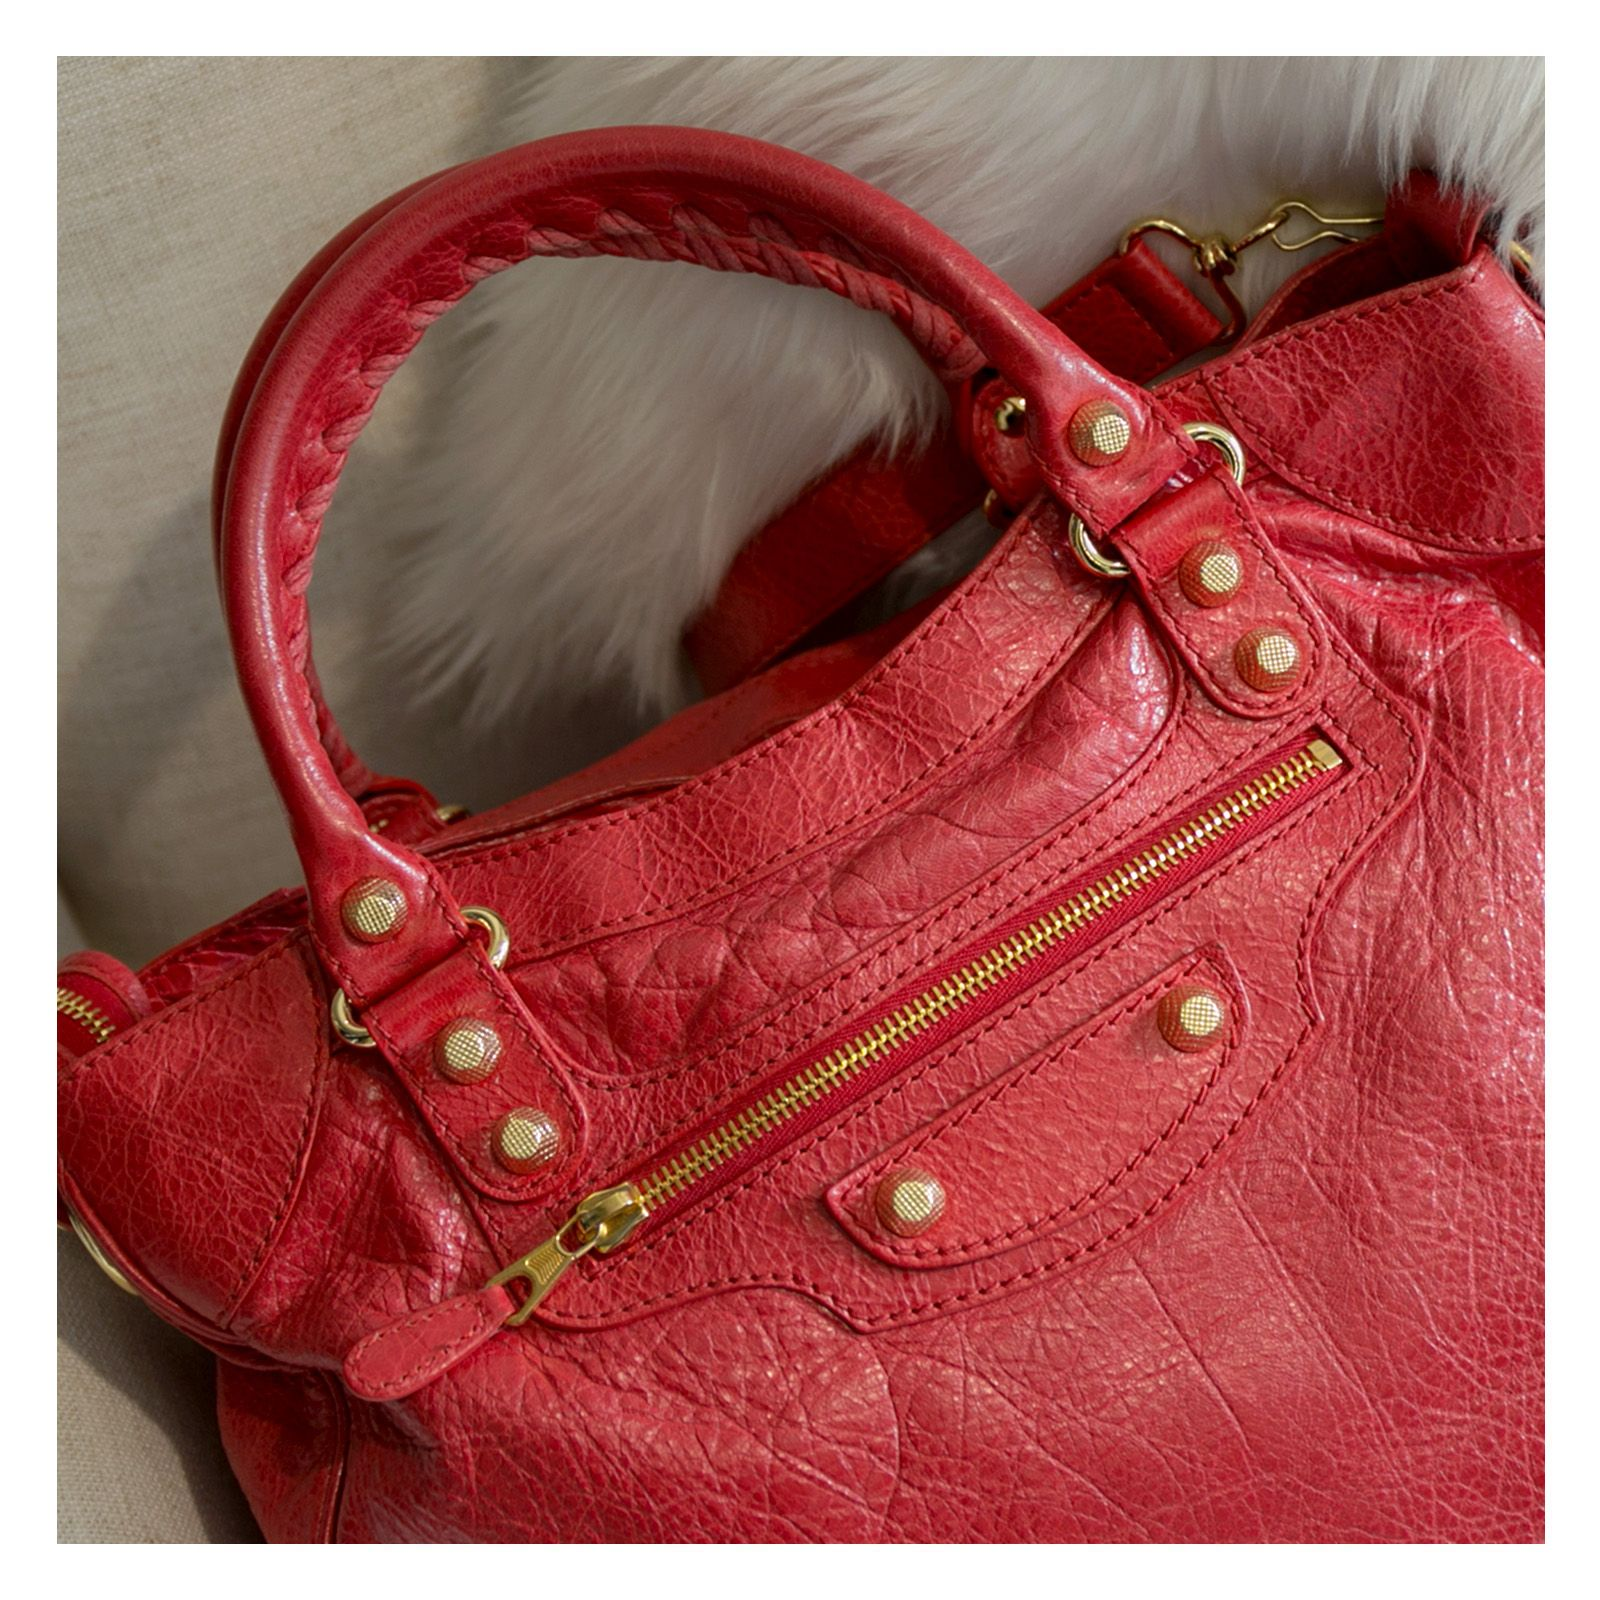 BALENCIAGARed Leather Giant Hardware City Bag Online